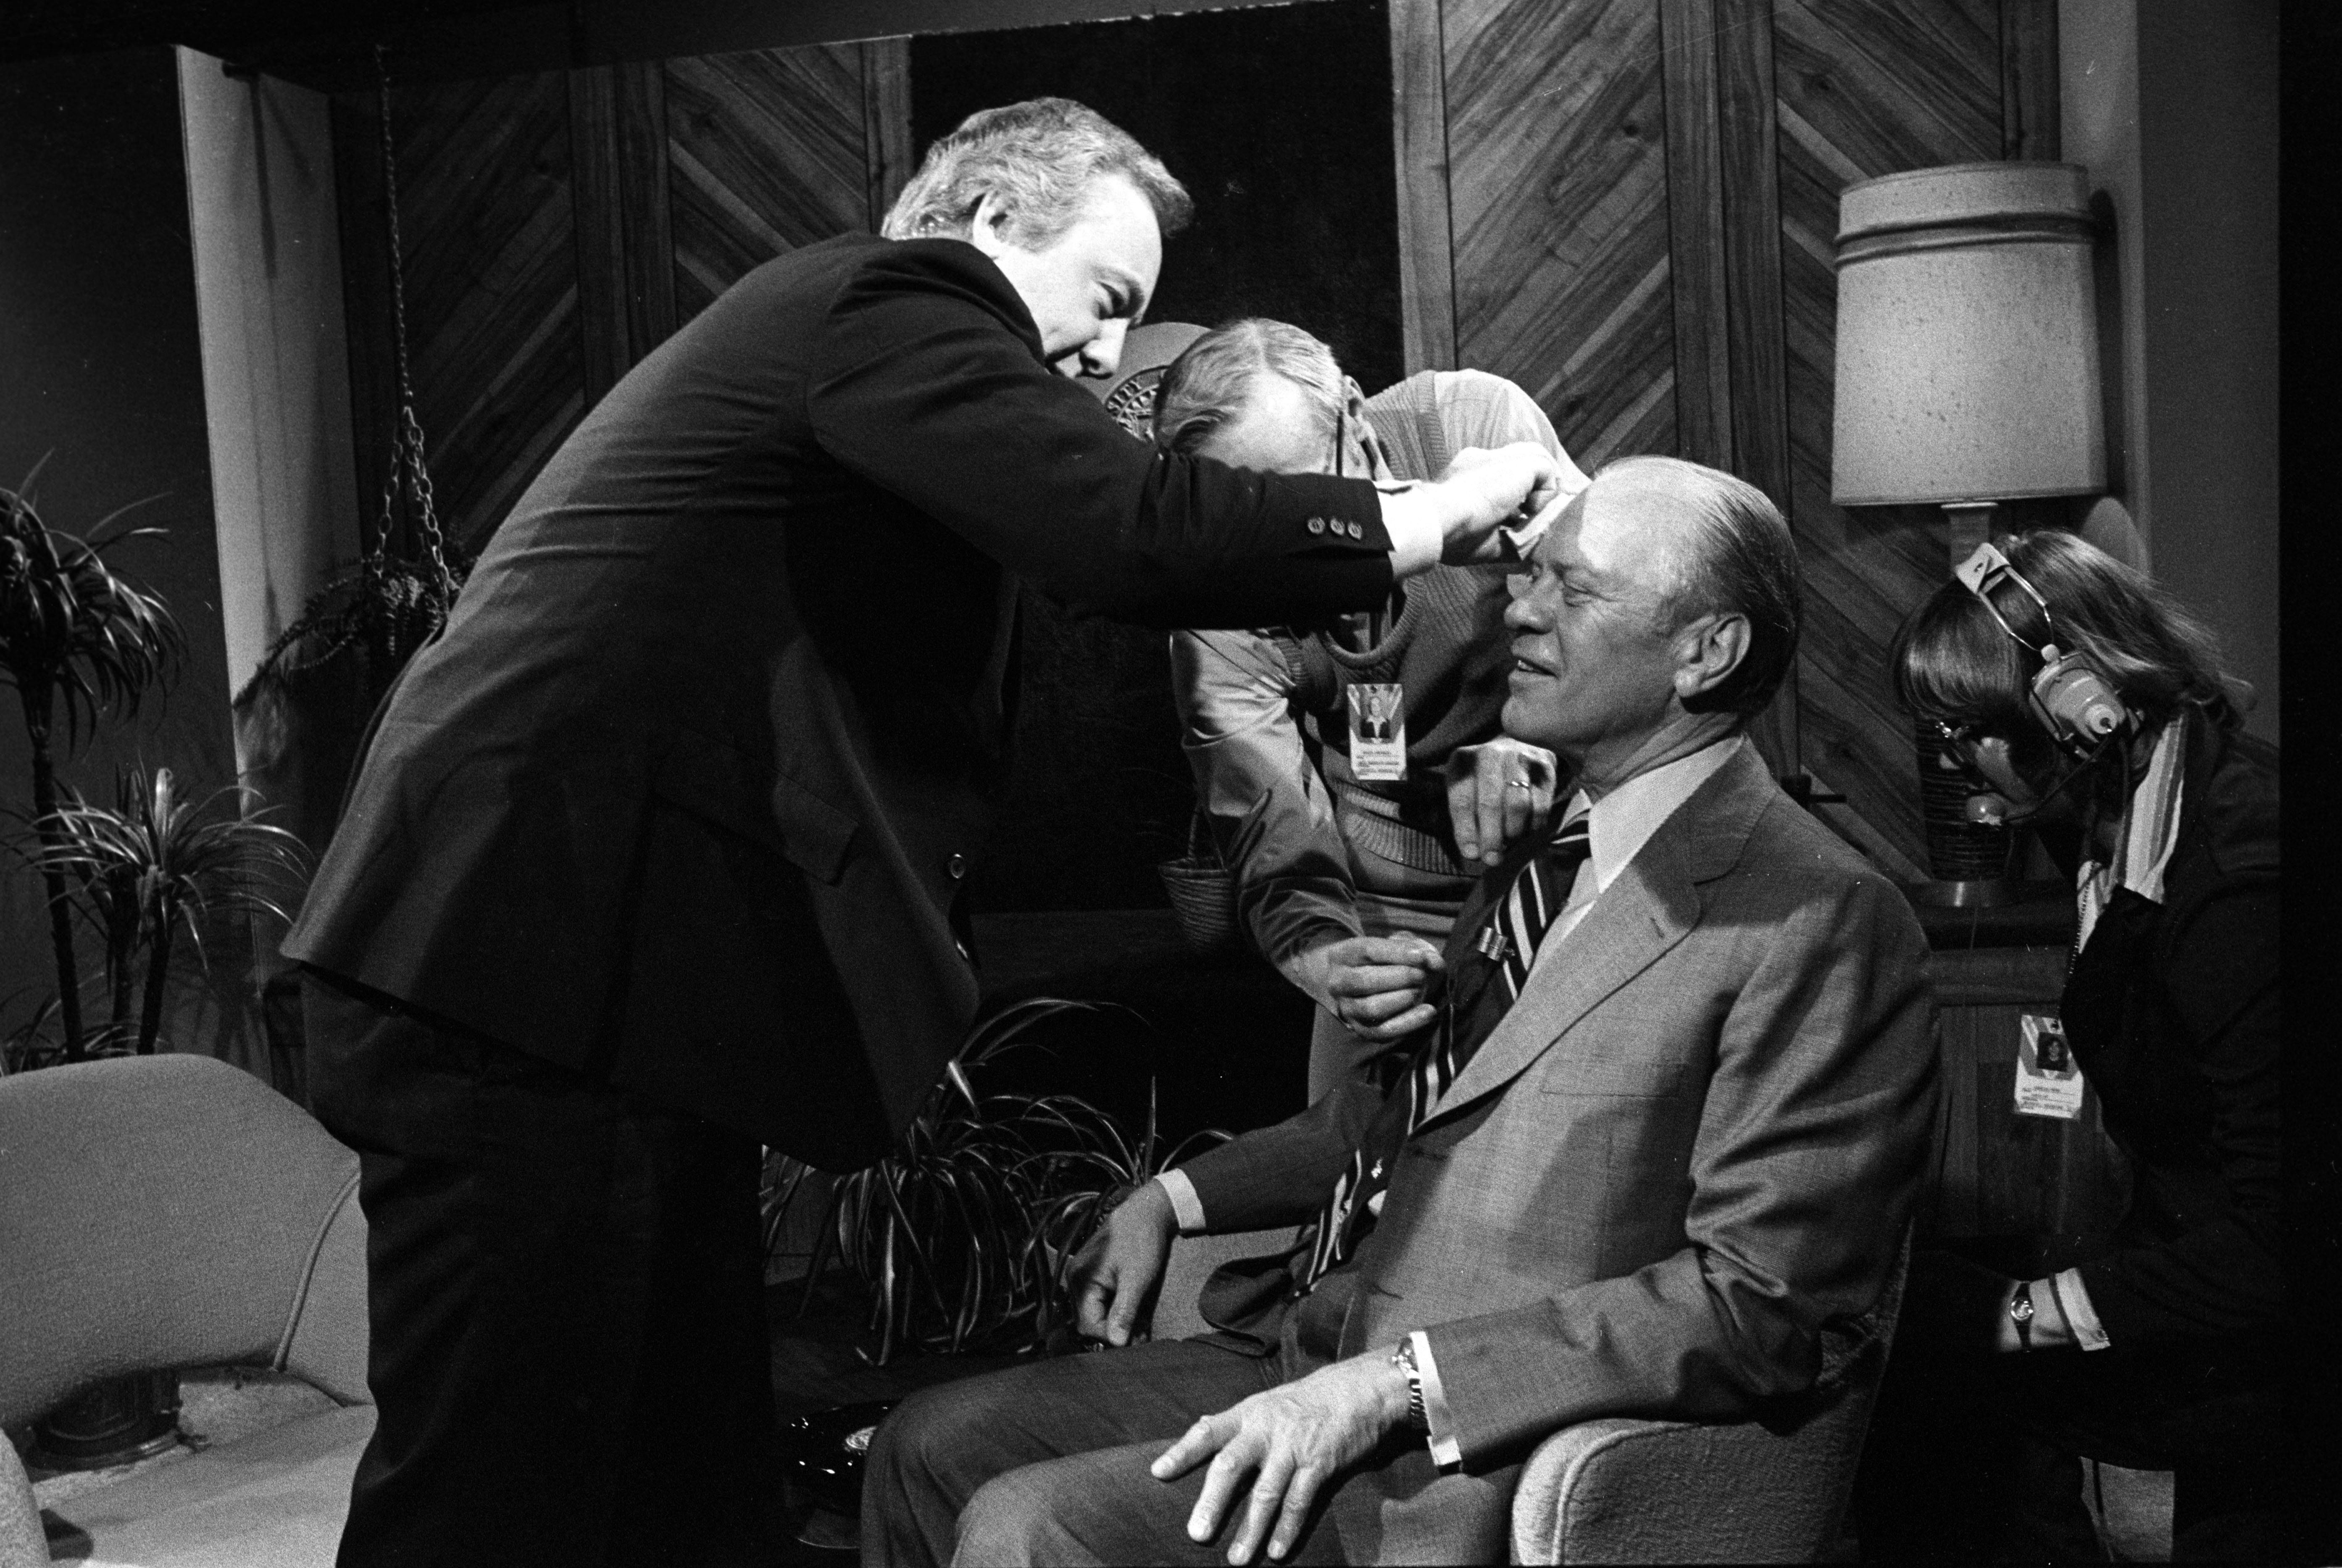 Former President Gerald Ford Getting Makeup Prior to Interview with ABC News Anchor Steve Bell, April 1981 image